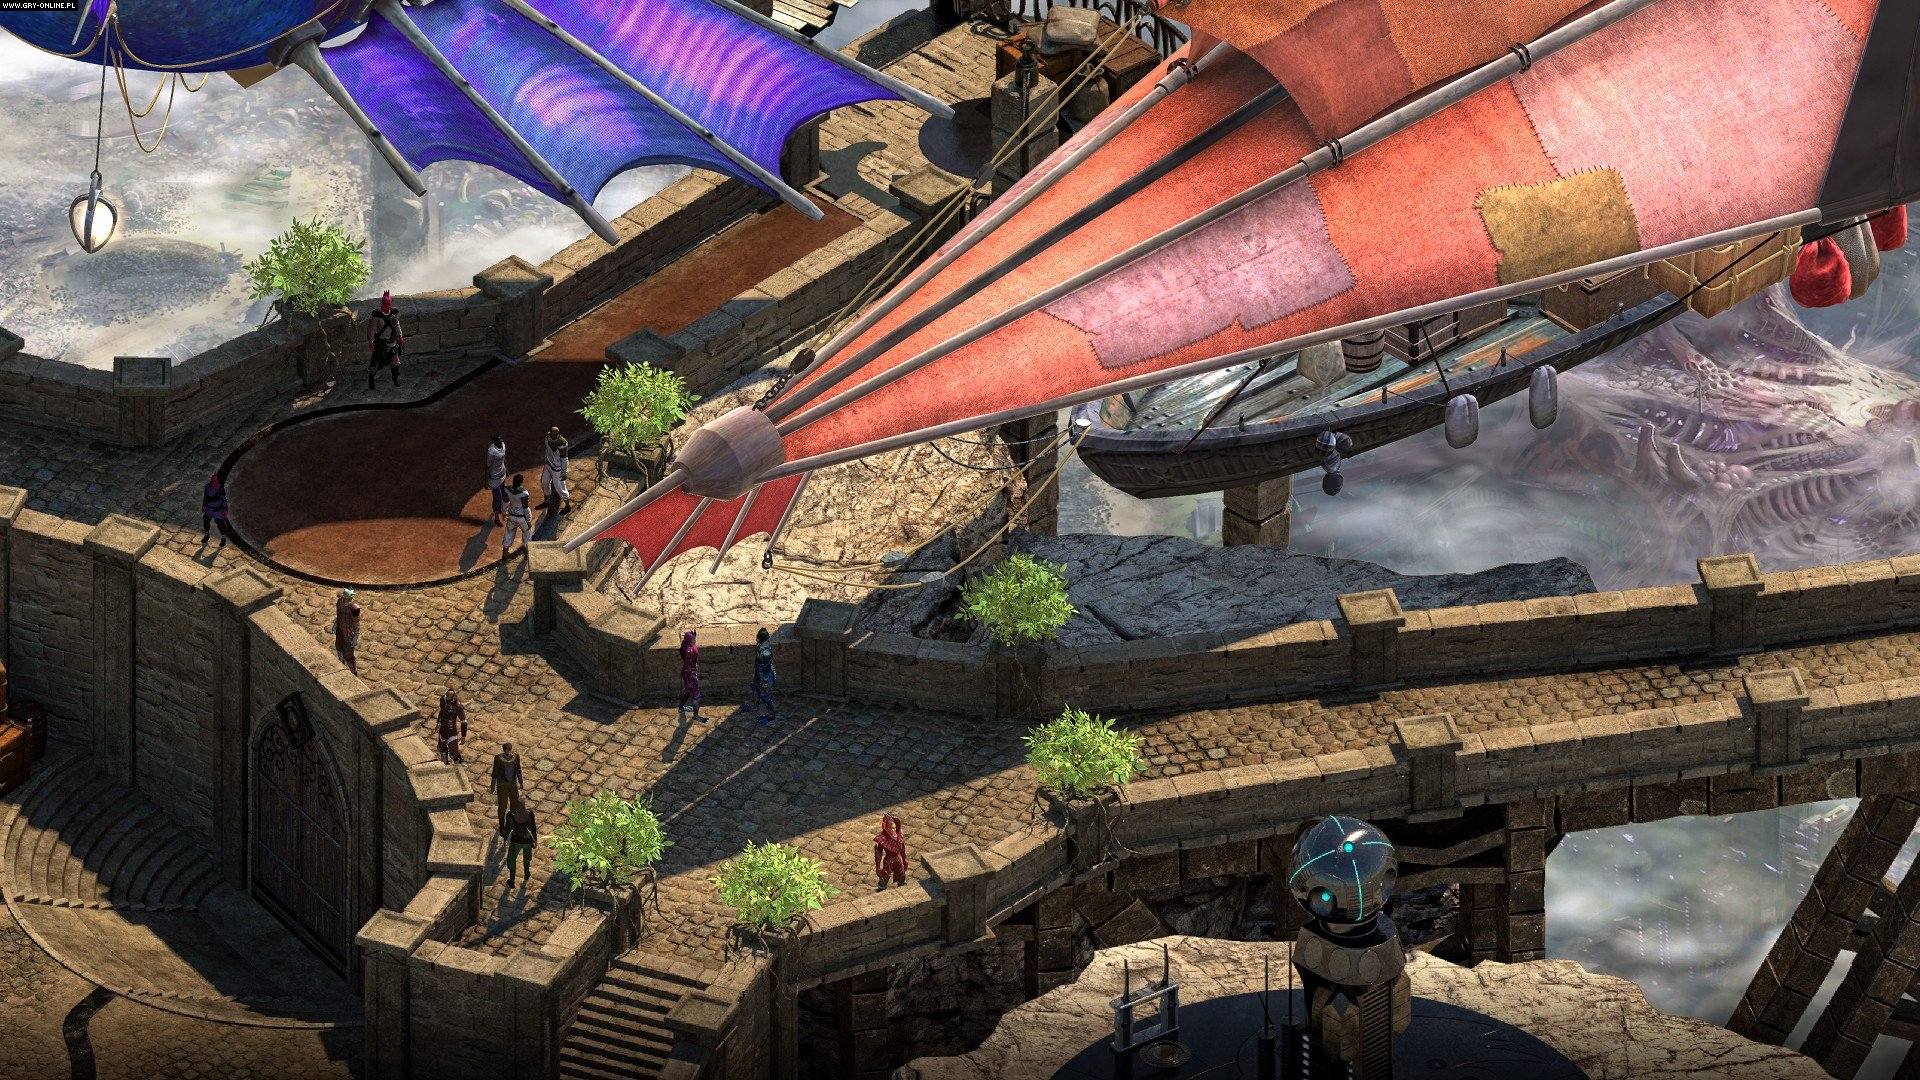 Torment: Tides of Numenera PC Games Image 21/28, inXile entertainment, Techland